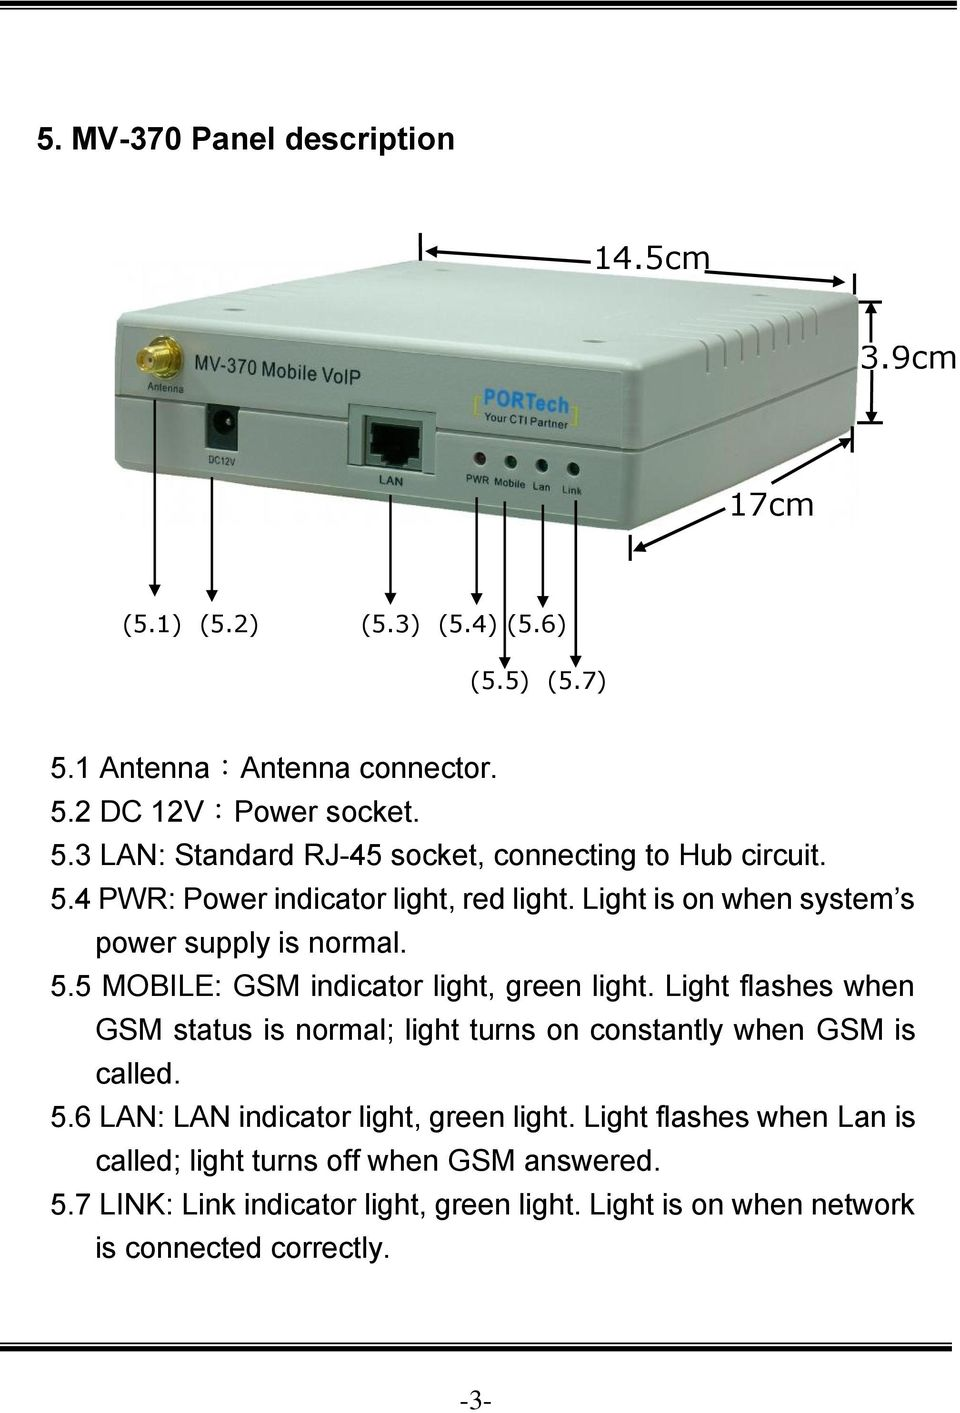 Light flashes when GSM status is normal; light turns on constantly when GSM is called. 5.6 LAN: LAN indicator light, green light.